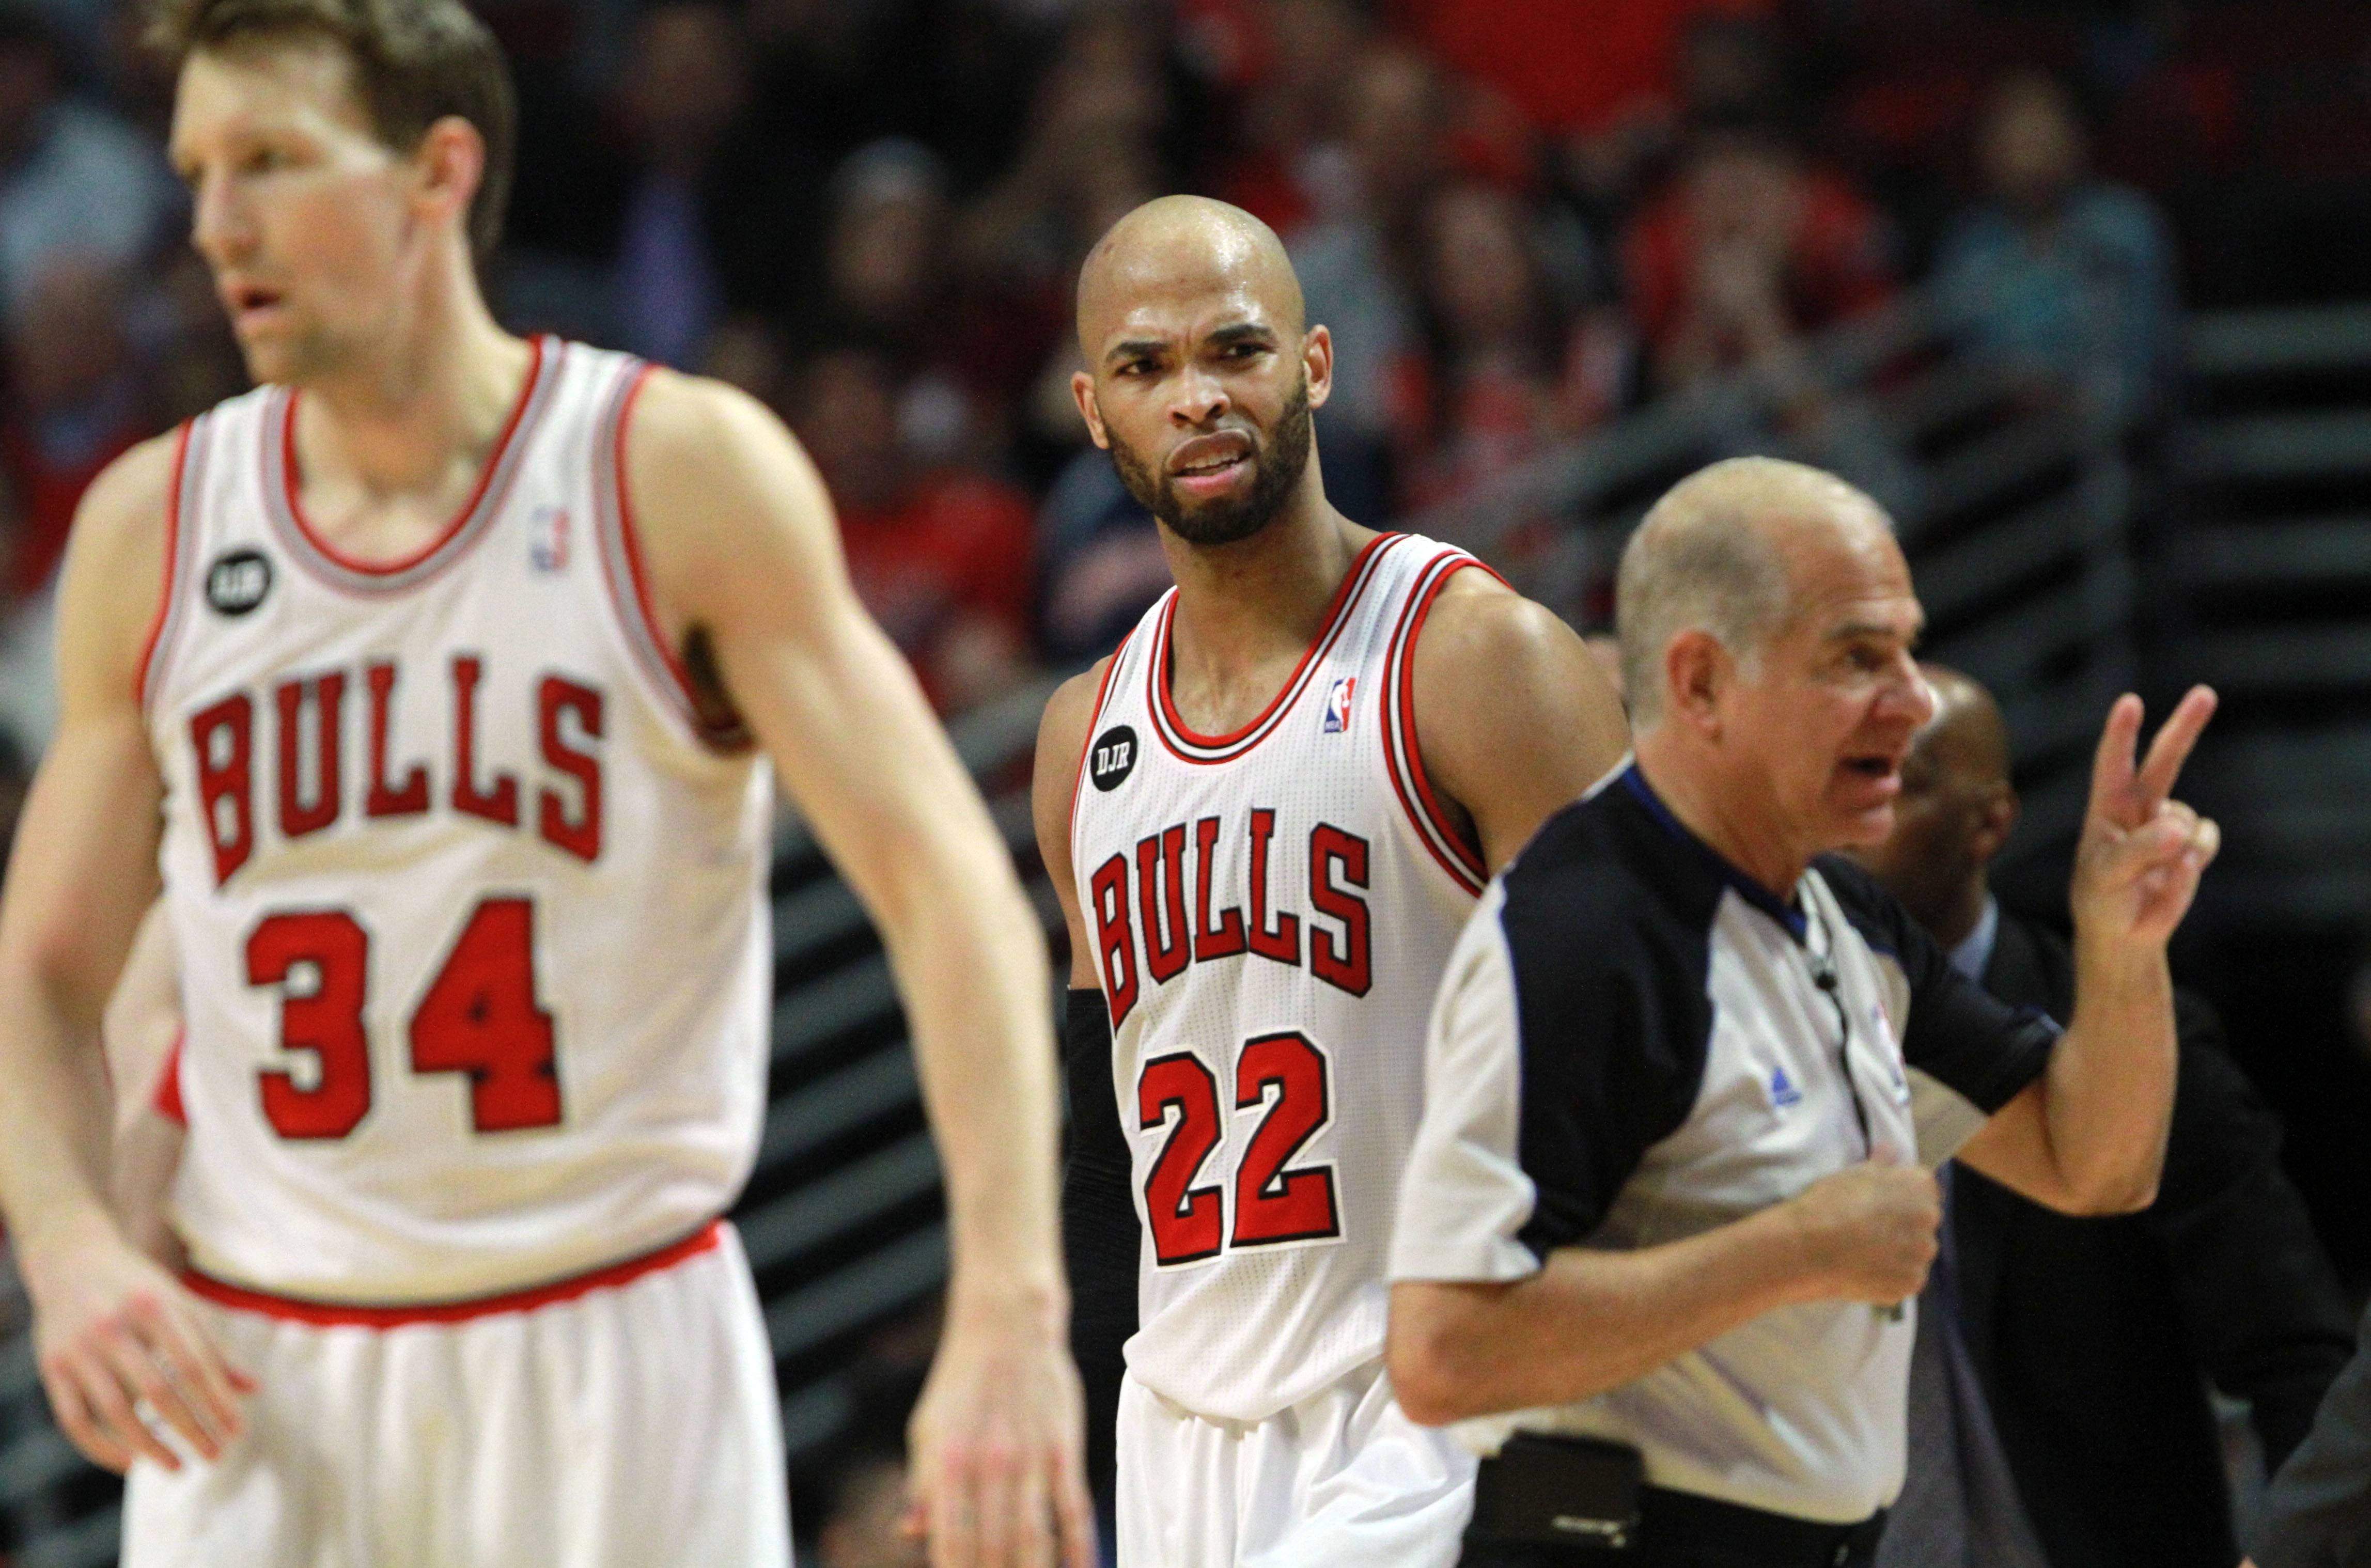 Bulls forward Taj Gibson disagrees with a call during the Bulls 75-69 loss in game five of first-round of the NBA playoffs Tuesday night at the United Center.